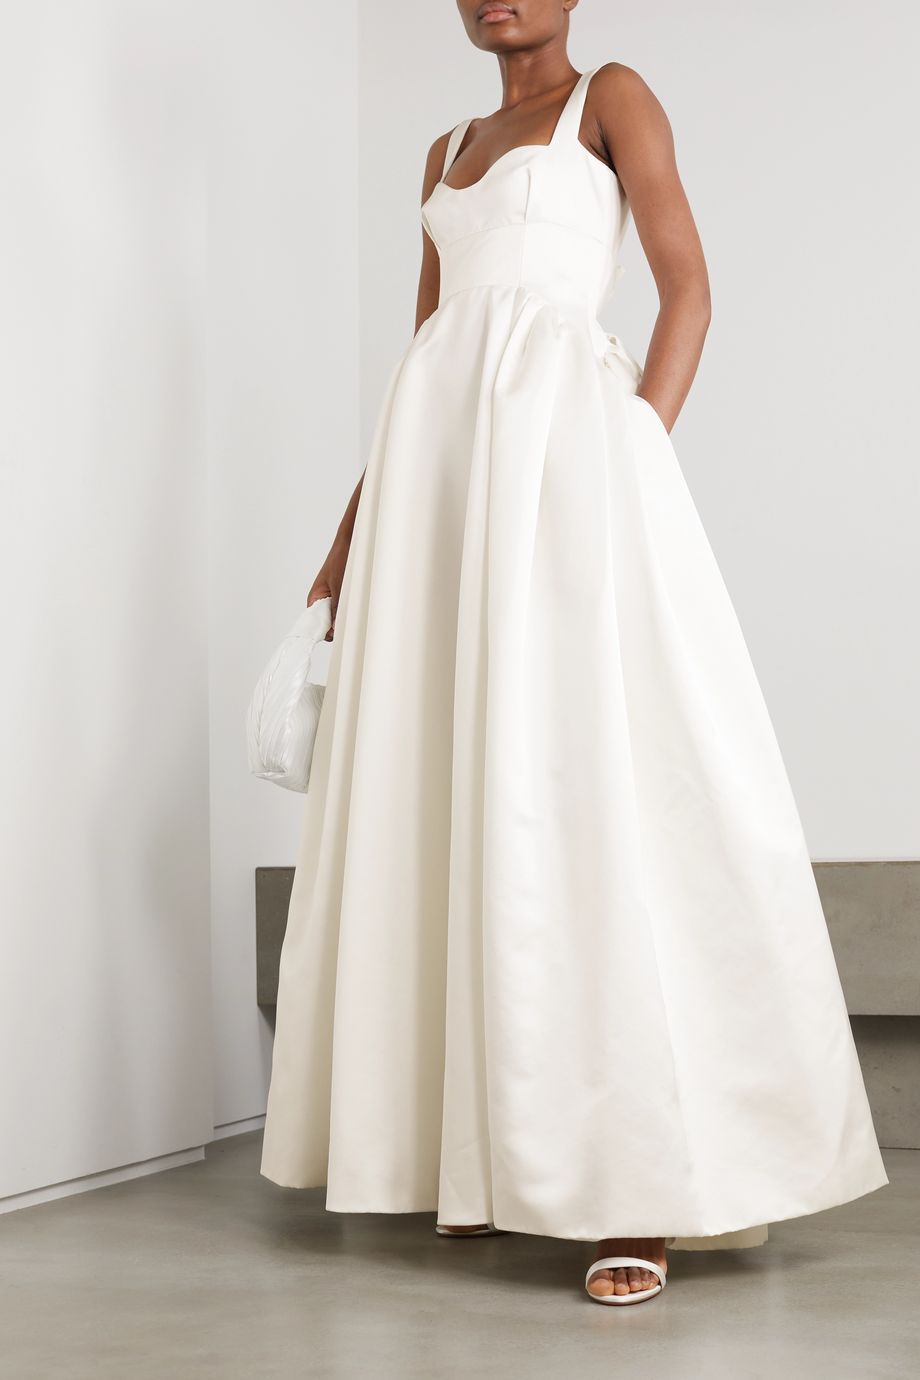 Emilia Wickstead Diamond duchesse-satin gown